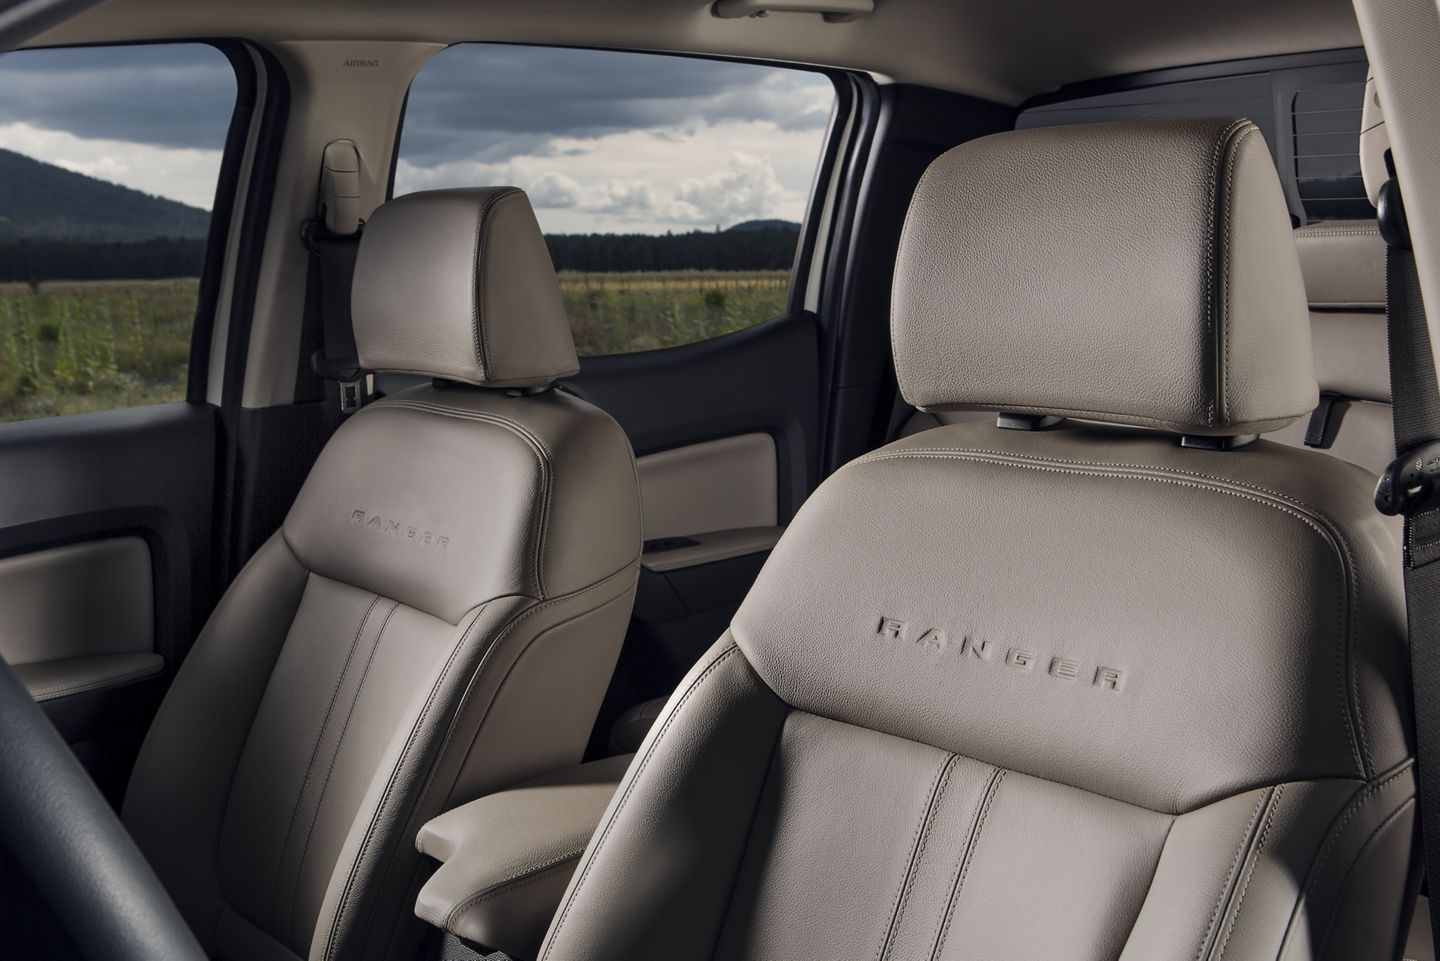 2019 Ford Ranger Interior Seating